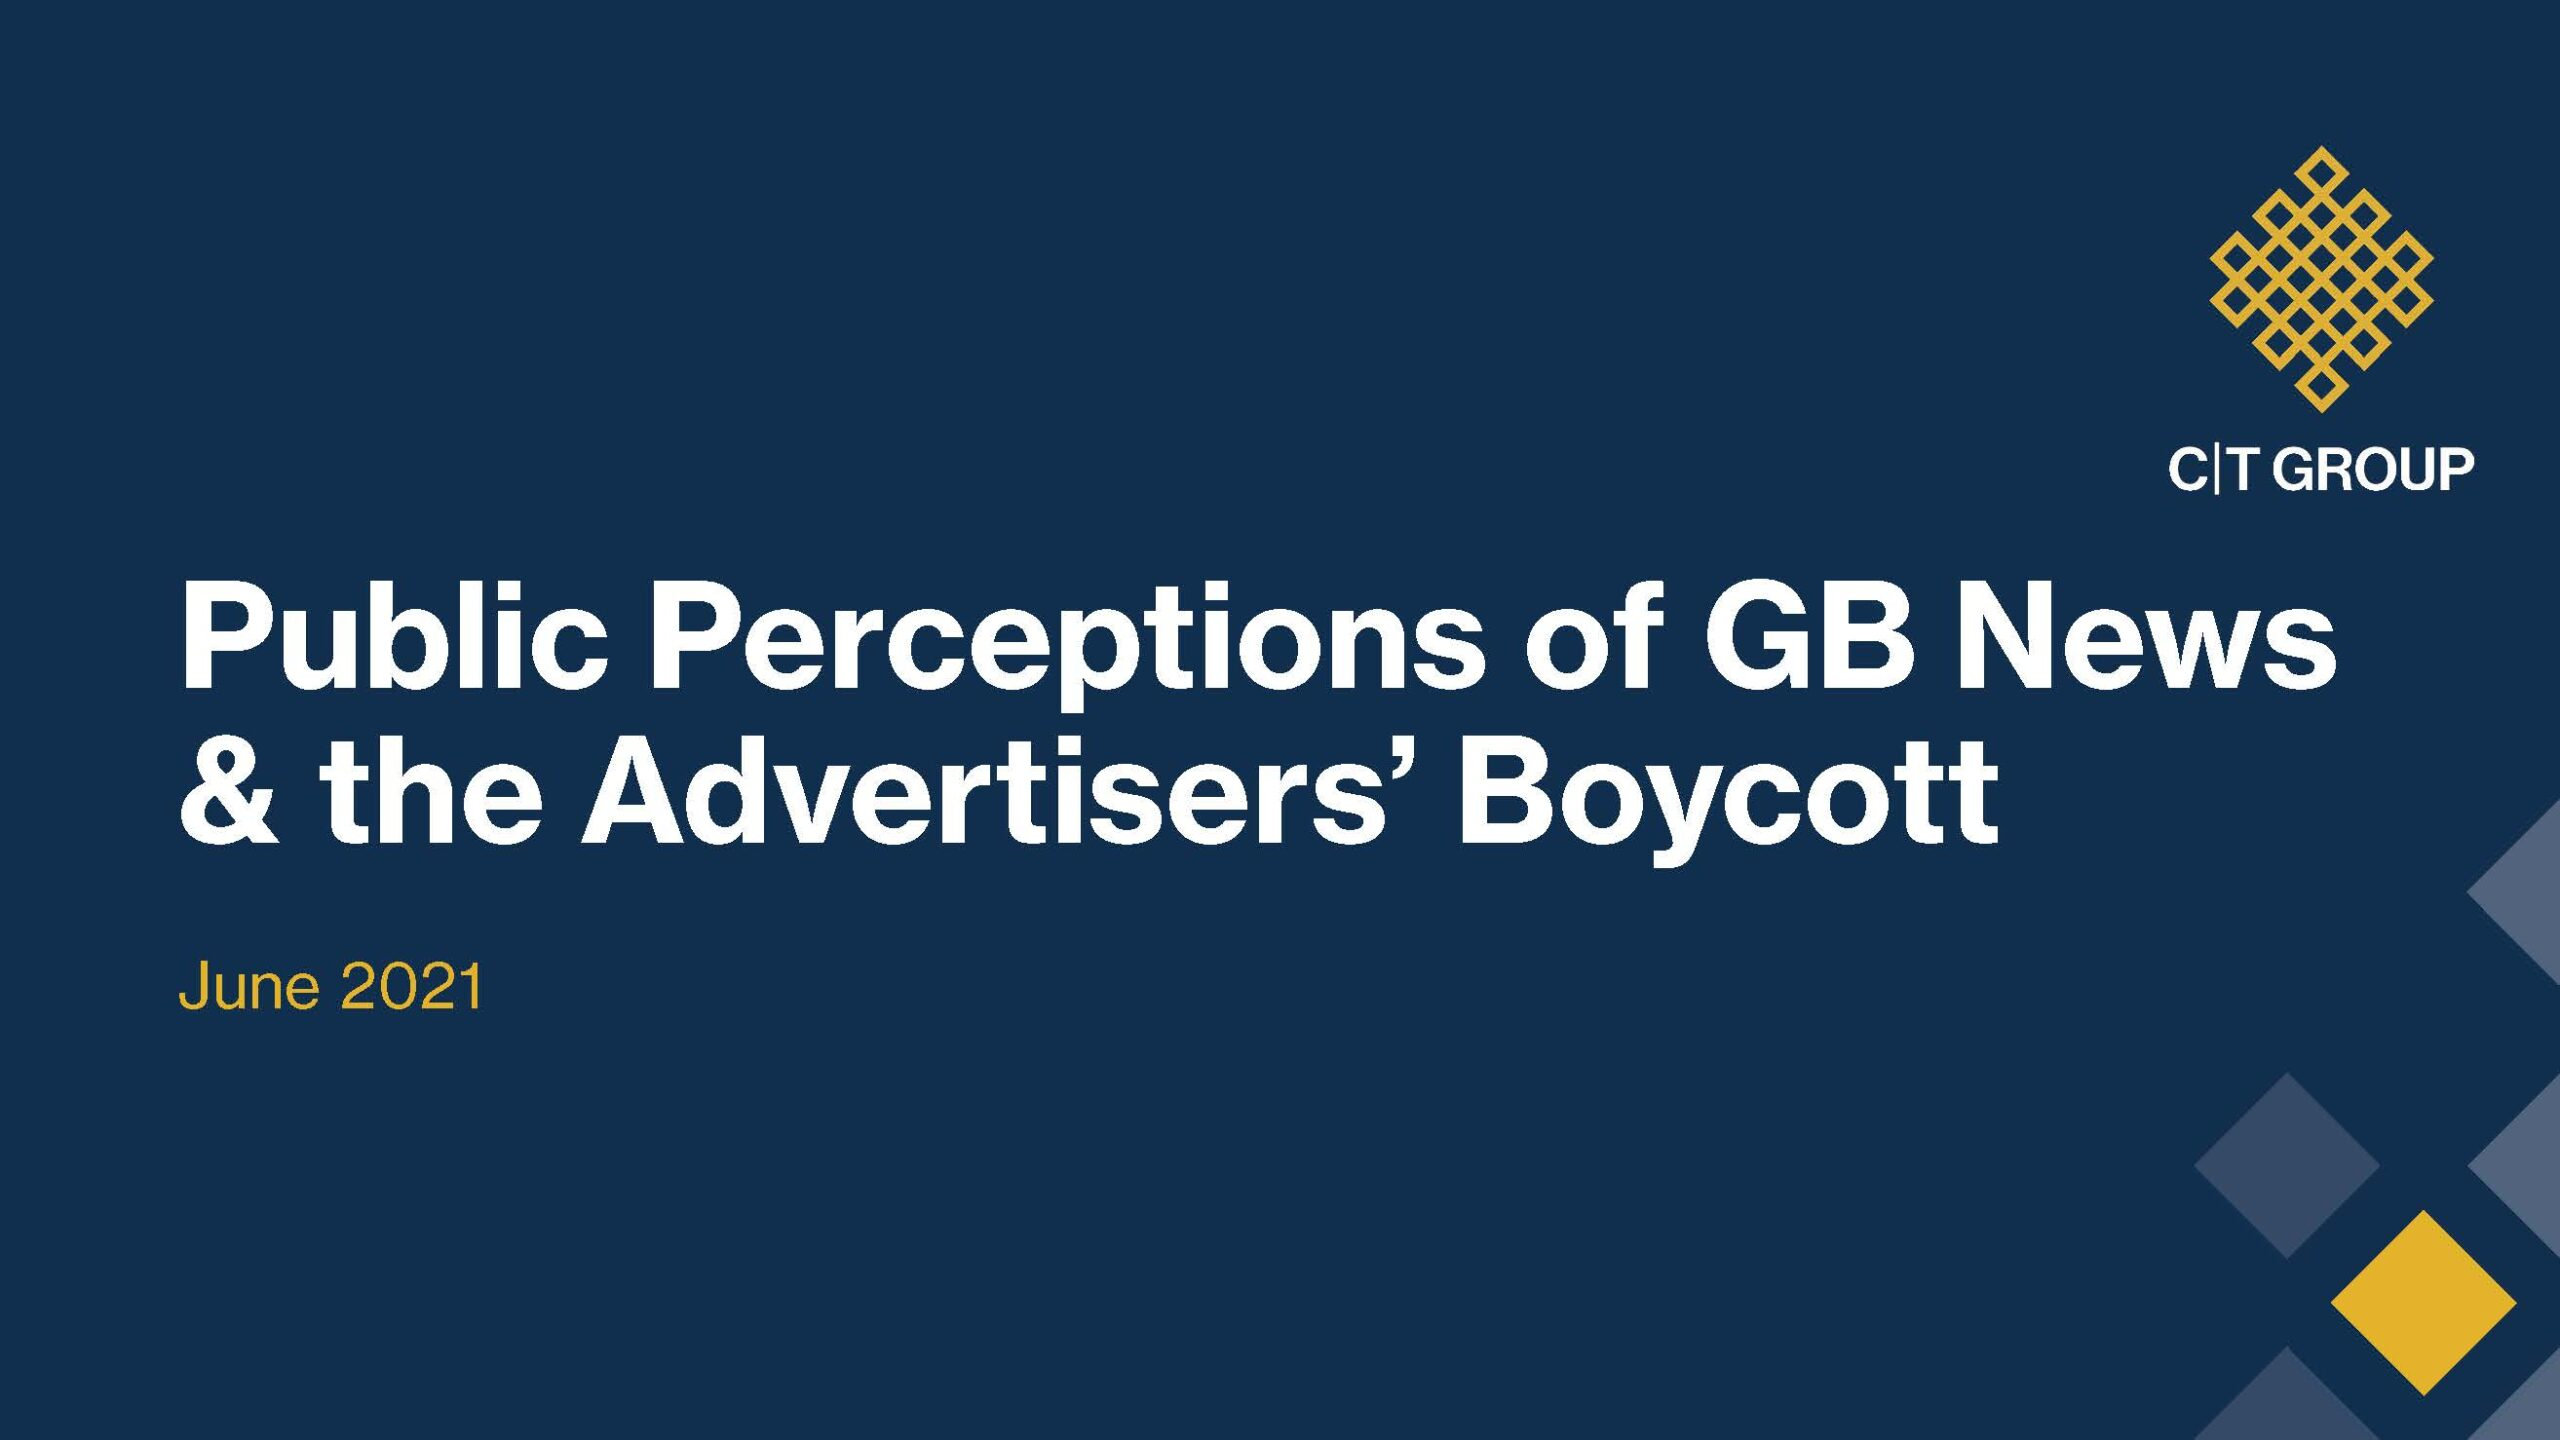 Public Perceptions of GB News and the Advertisers' Boycott